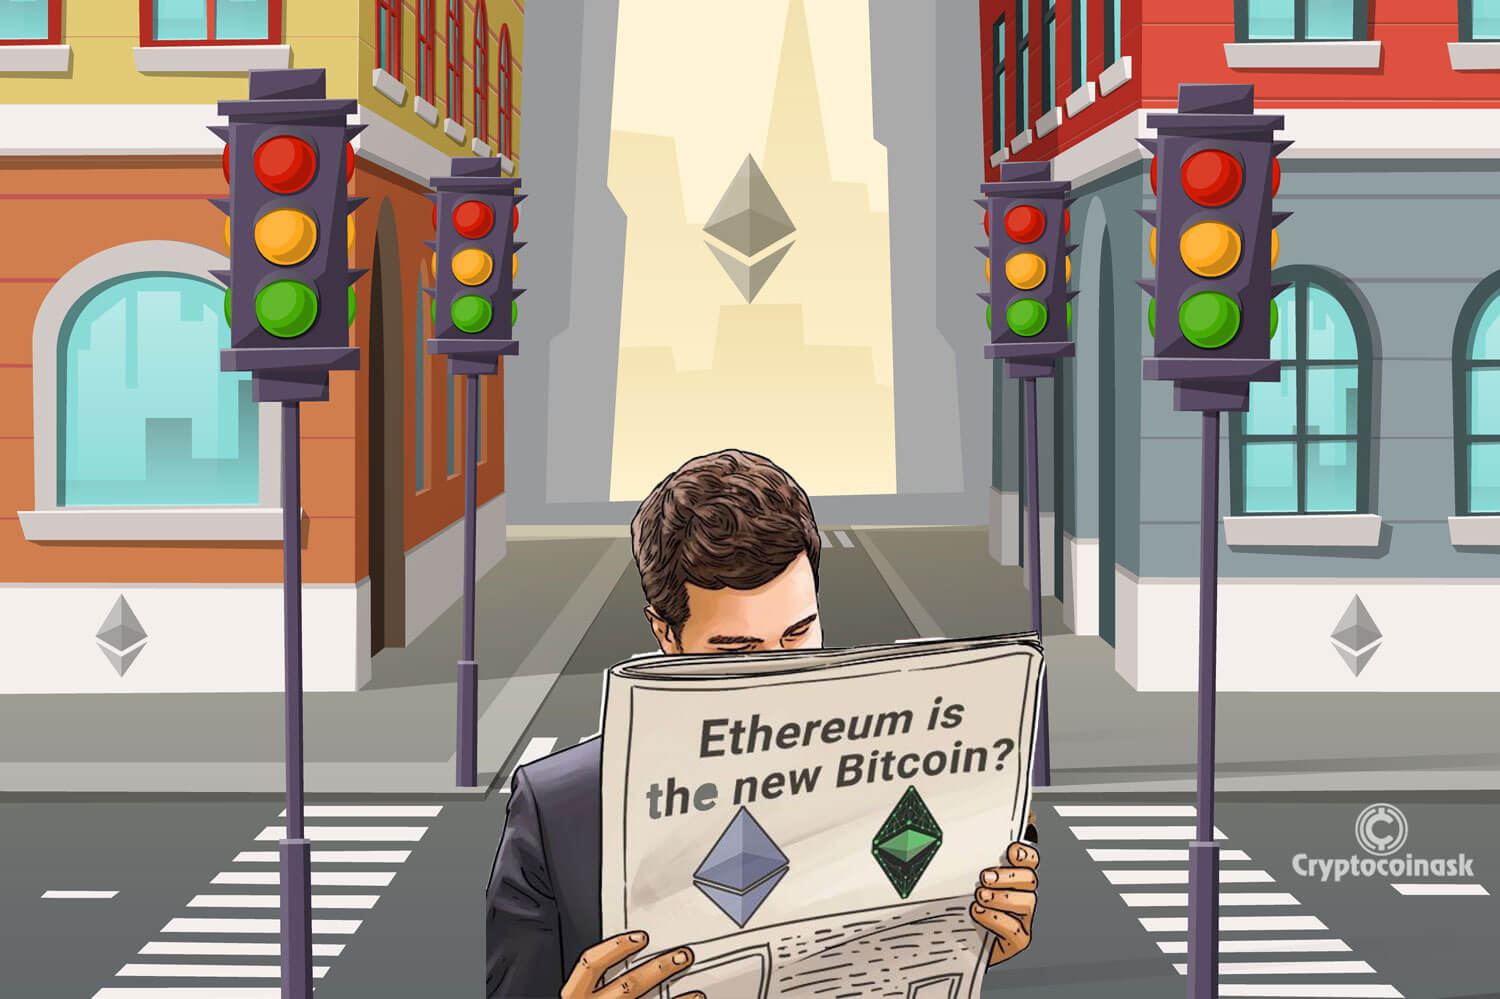 Ethereum is the new Bitcoin?